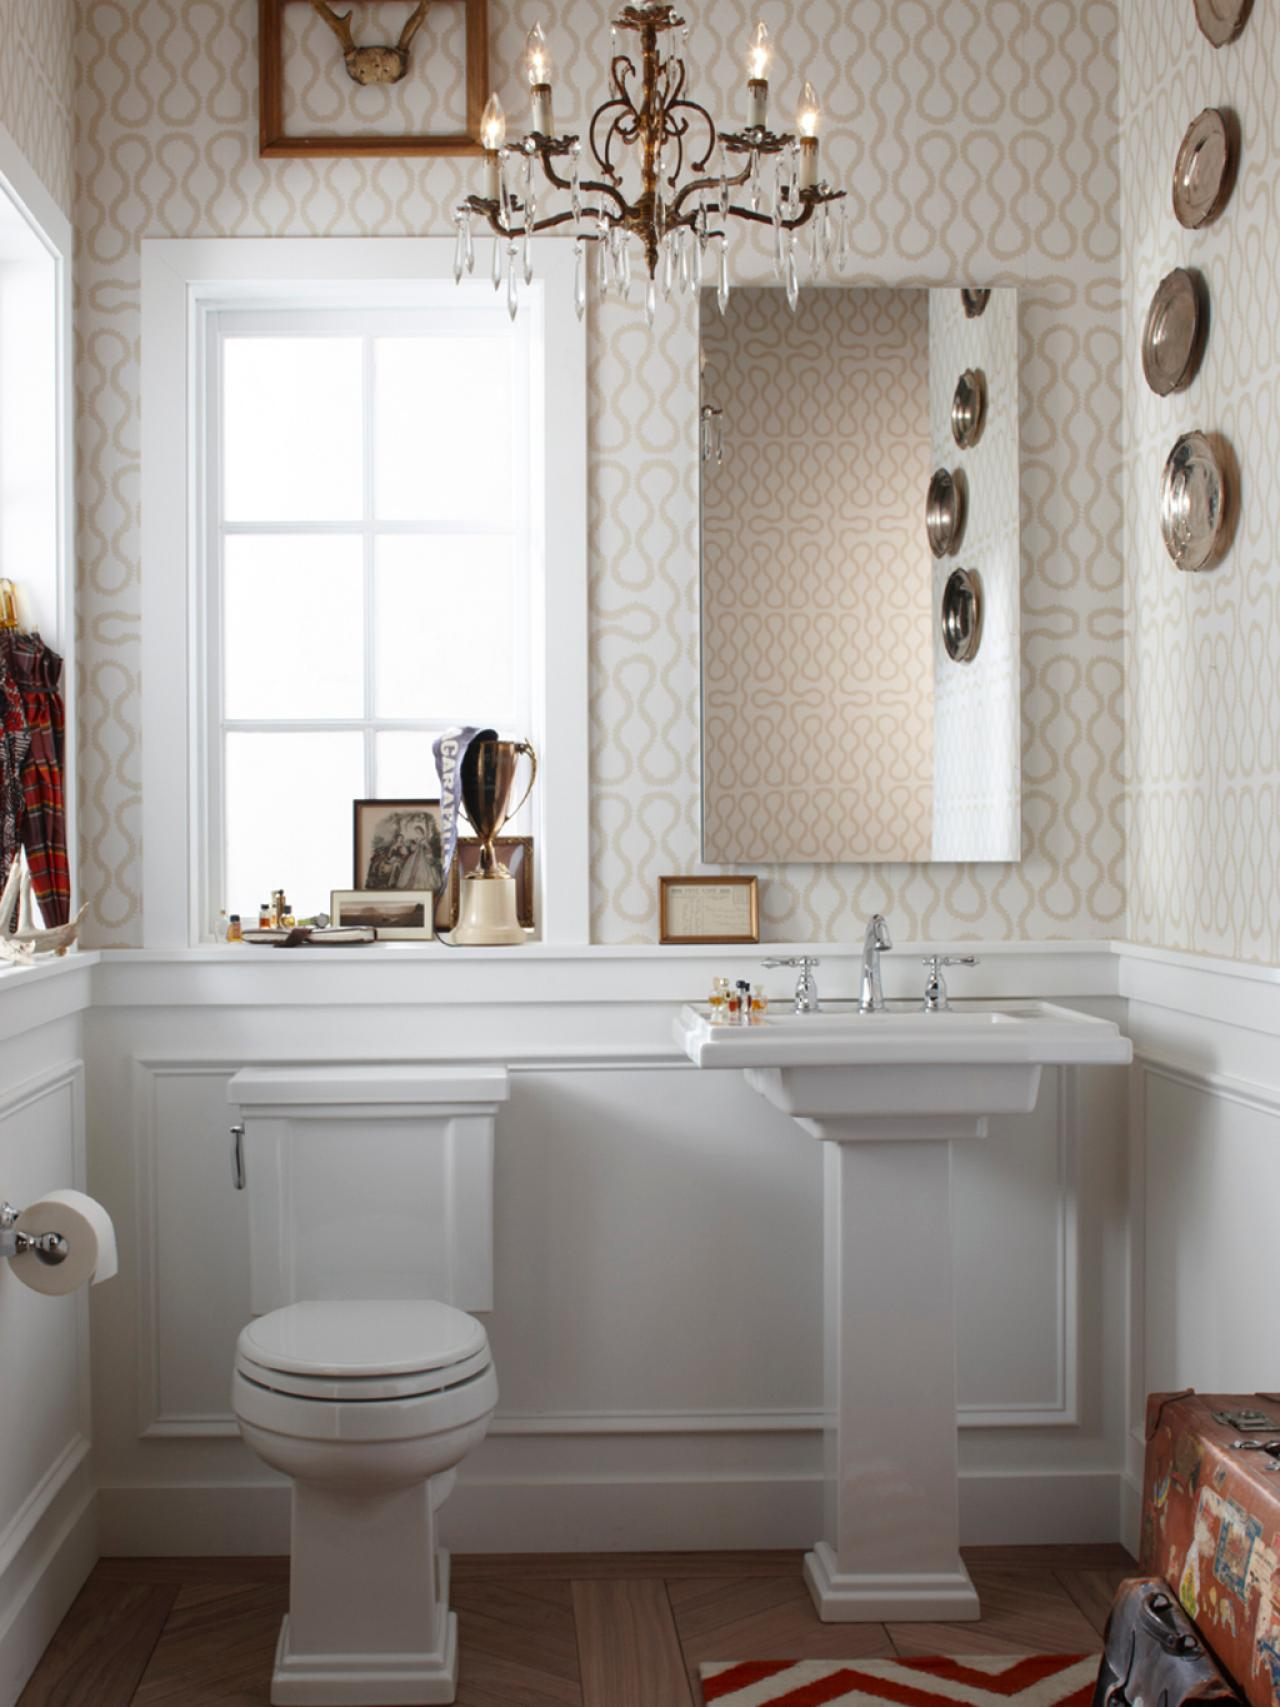 Bathroom Remodel Ideas Kohler bathroom remodel: splurge vs. save | hgtv